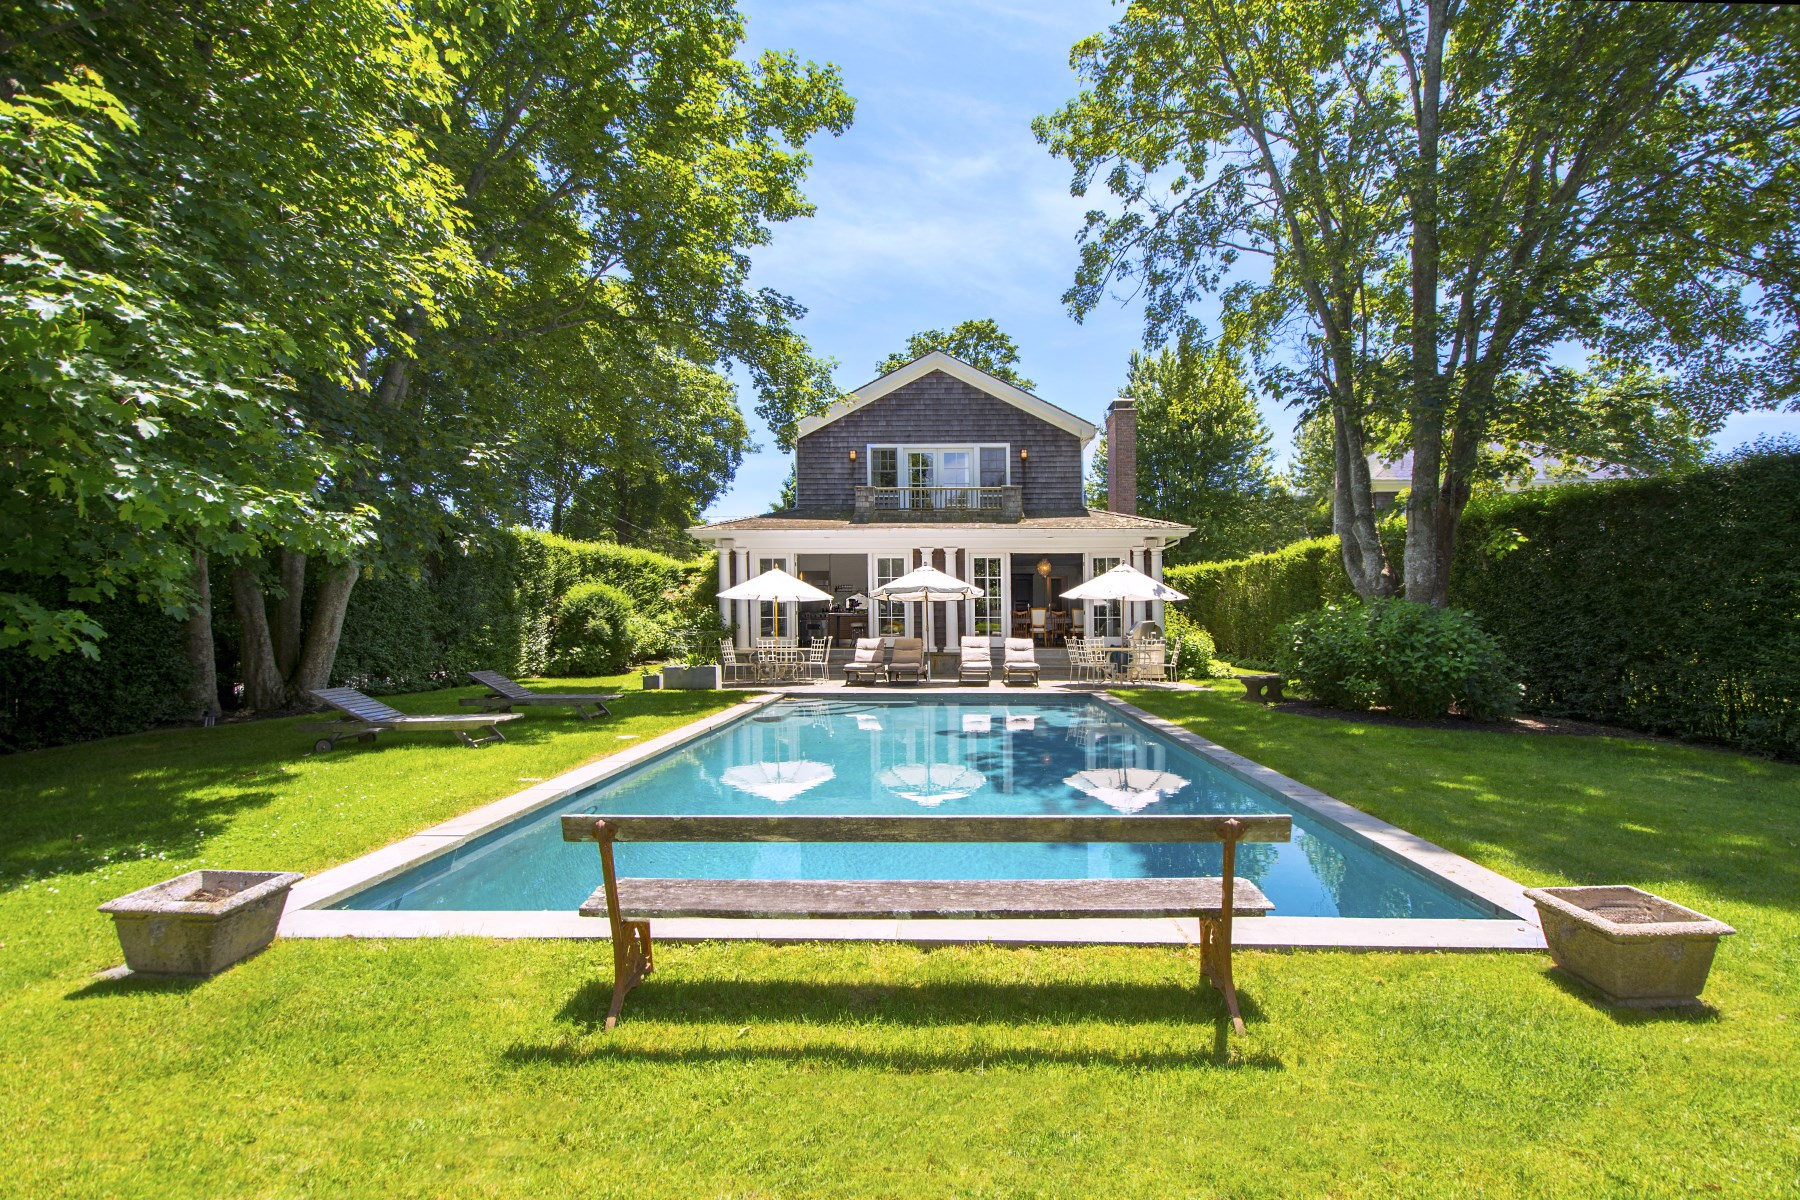 Single Family Home for Sale at Traditional Village Home with Pool 97 Pelletreau Street, Southampton, New York, 11968 United States